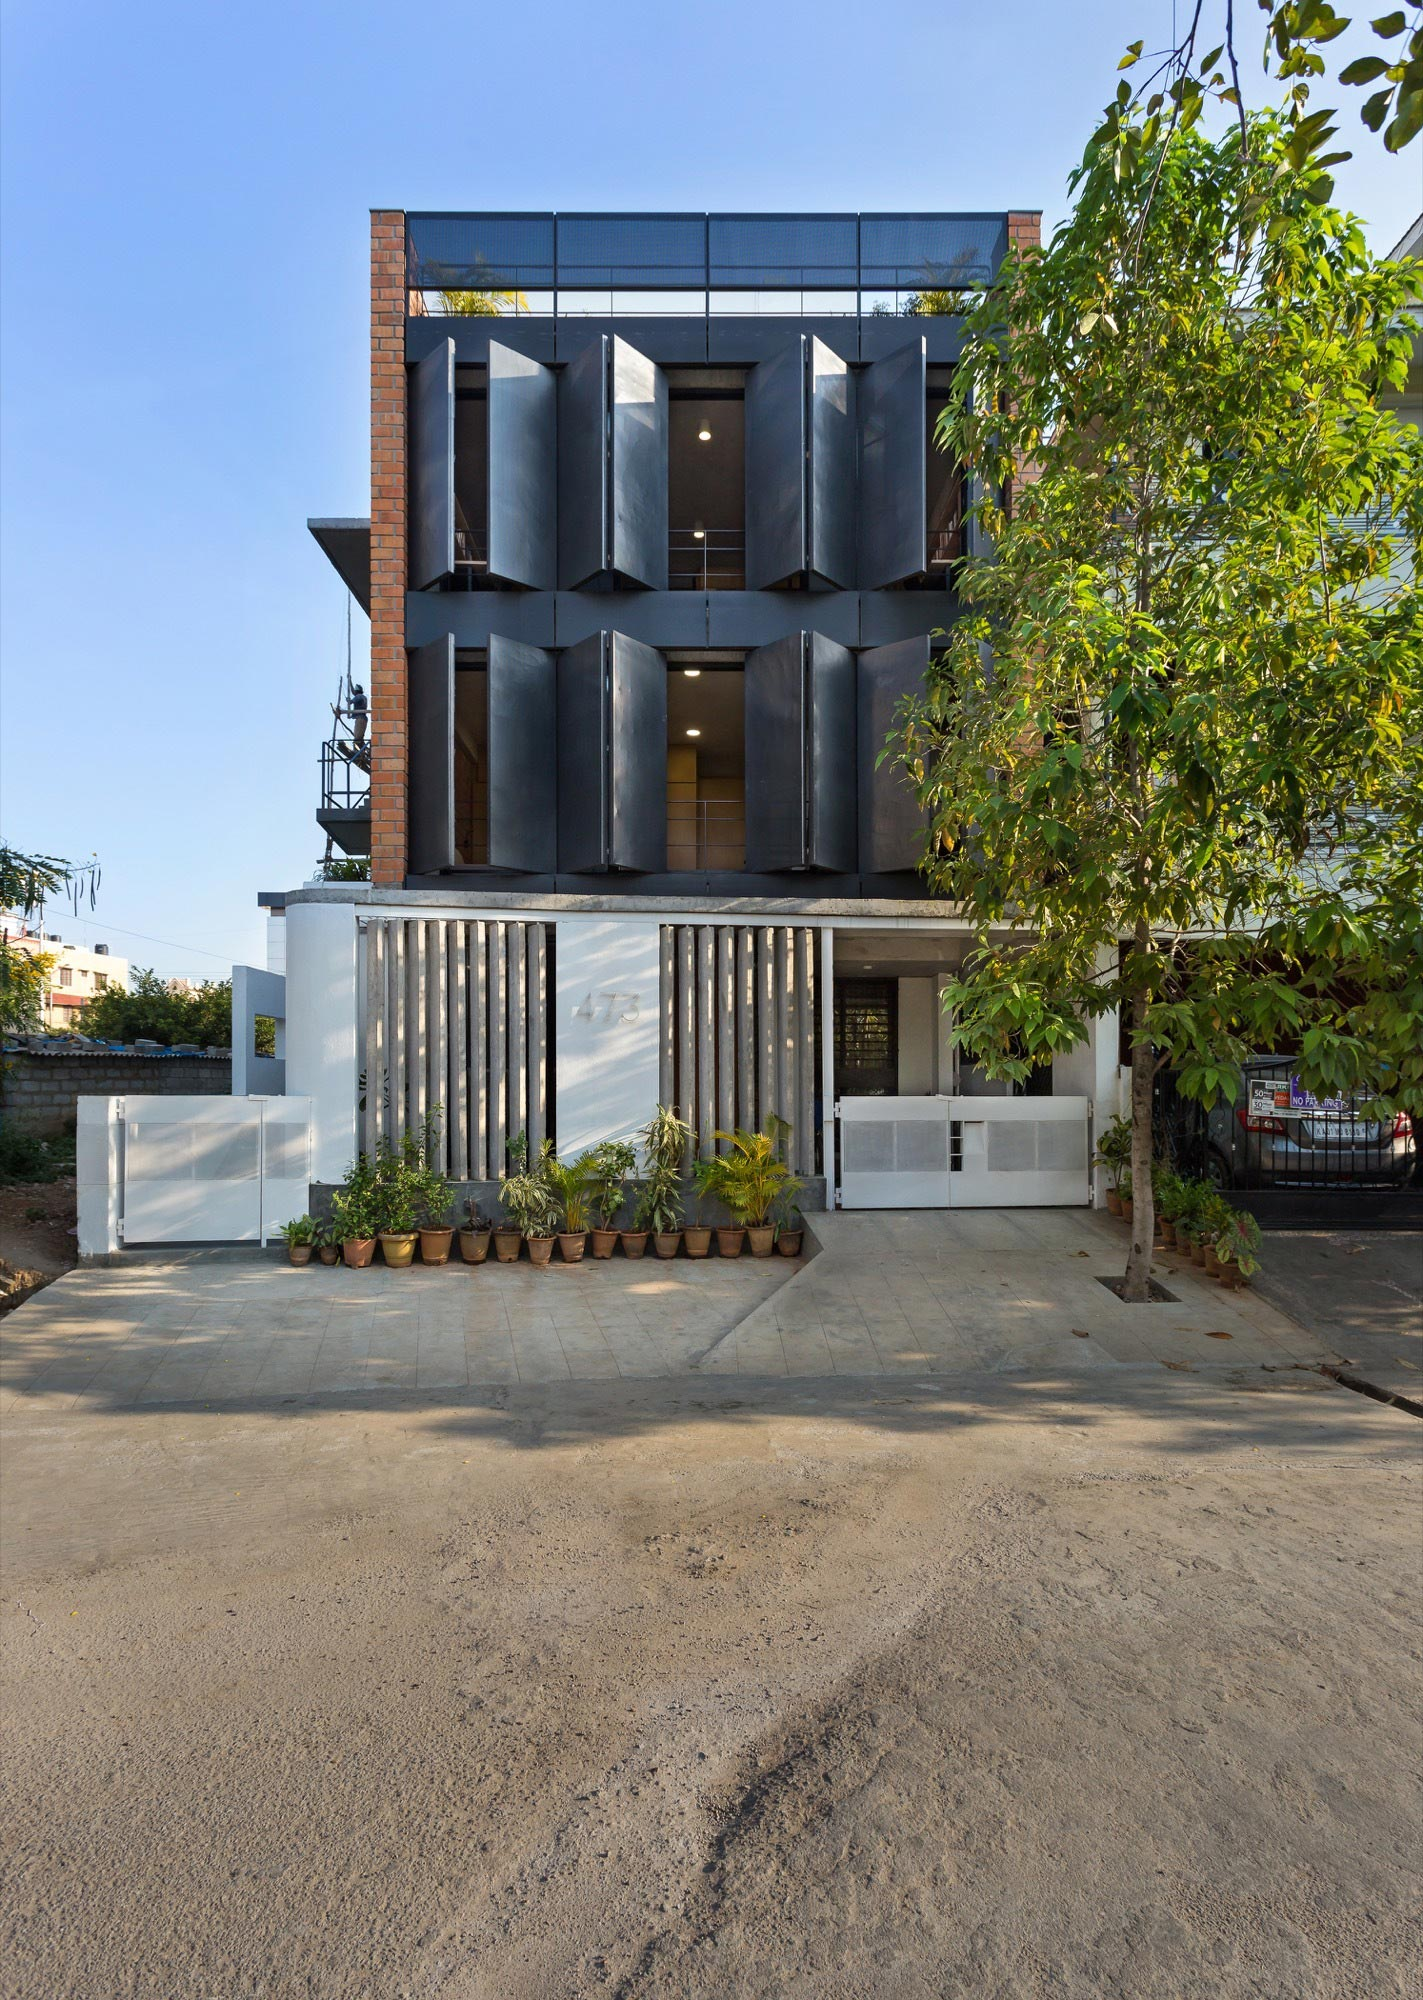 Architects home and office in bangalore by betweenspaces for Spaces architecture studio delhi